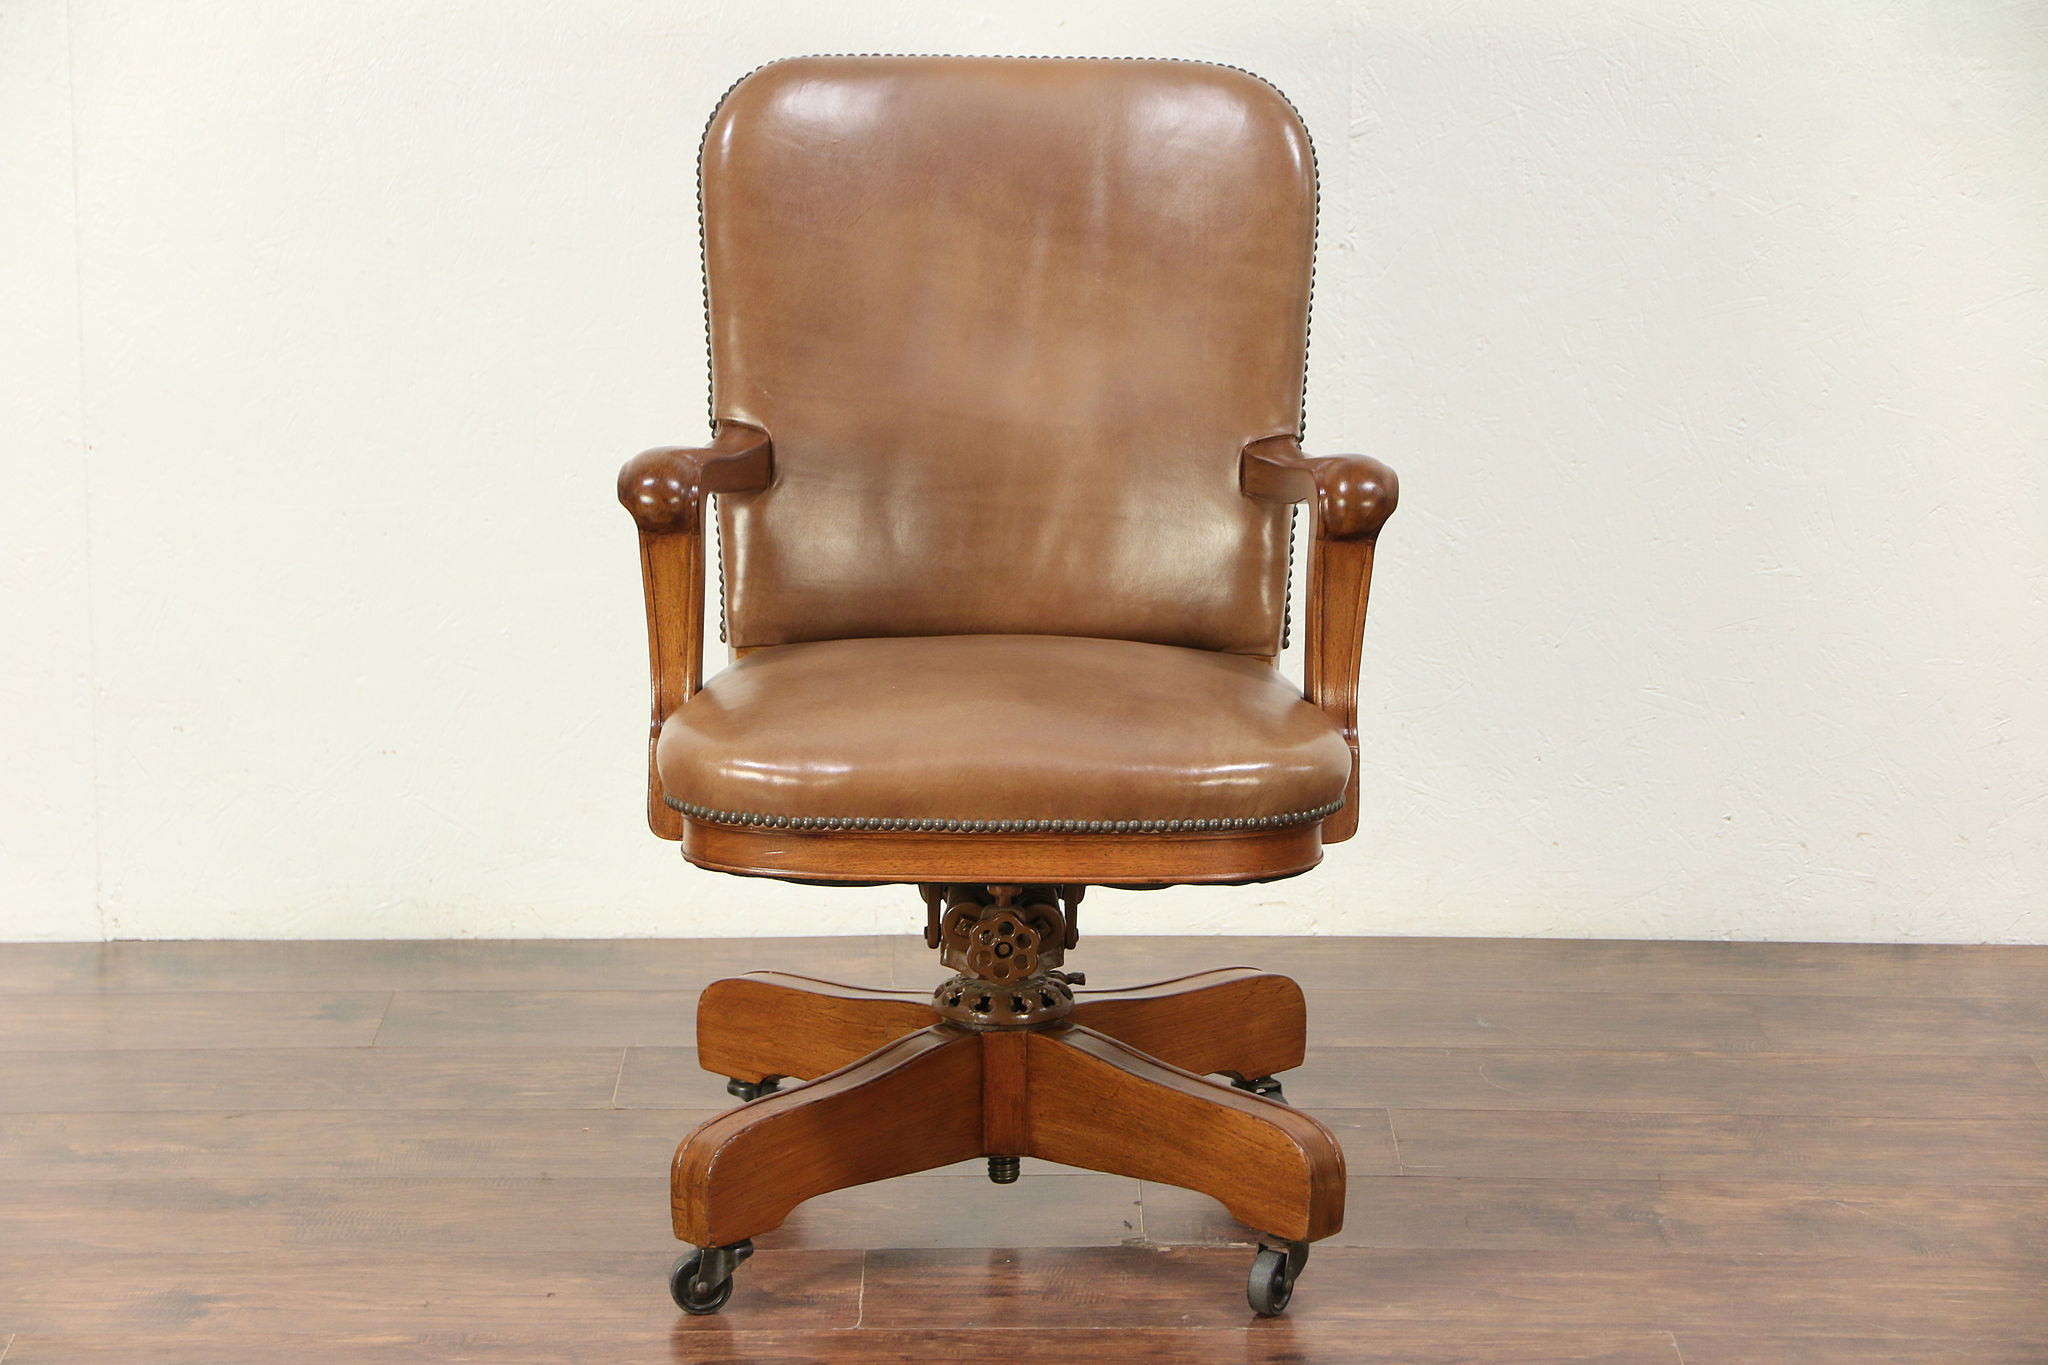 antique mahogany office chair bedroom tufted sold leather swivel adjustable desk signed milwaukee 29688